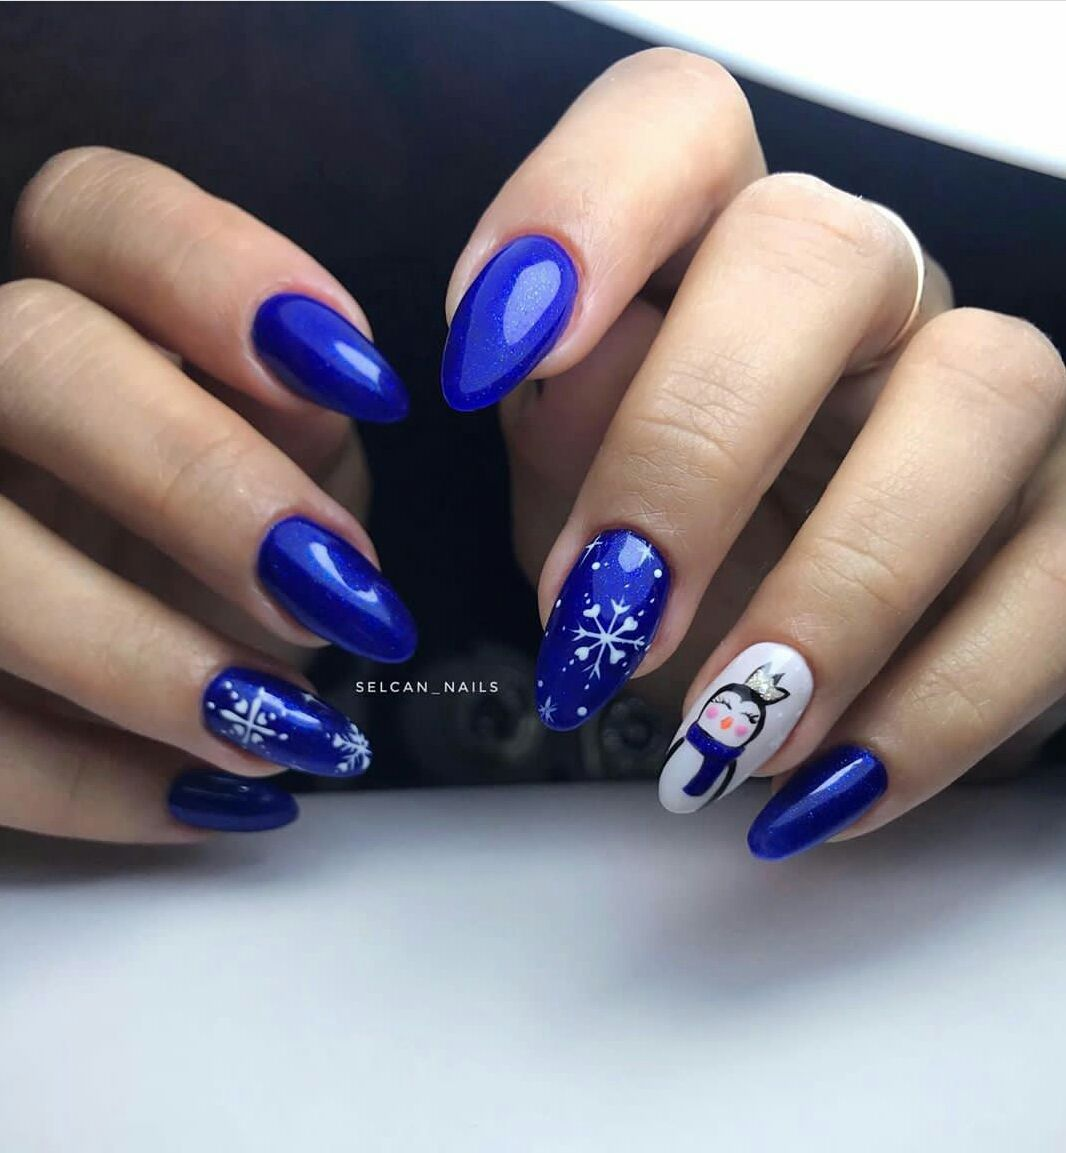 New Years Nails Design Ideas in 2020 New years nail